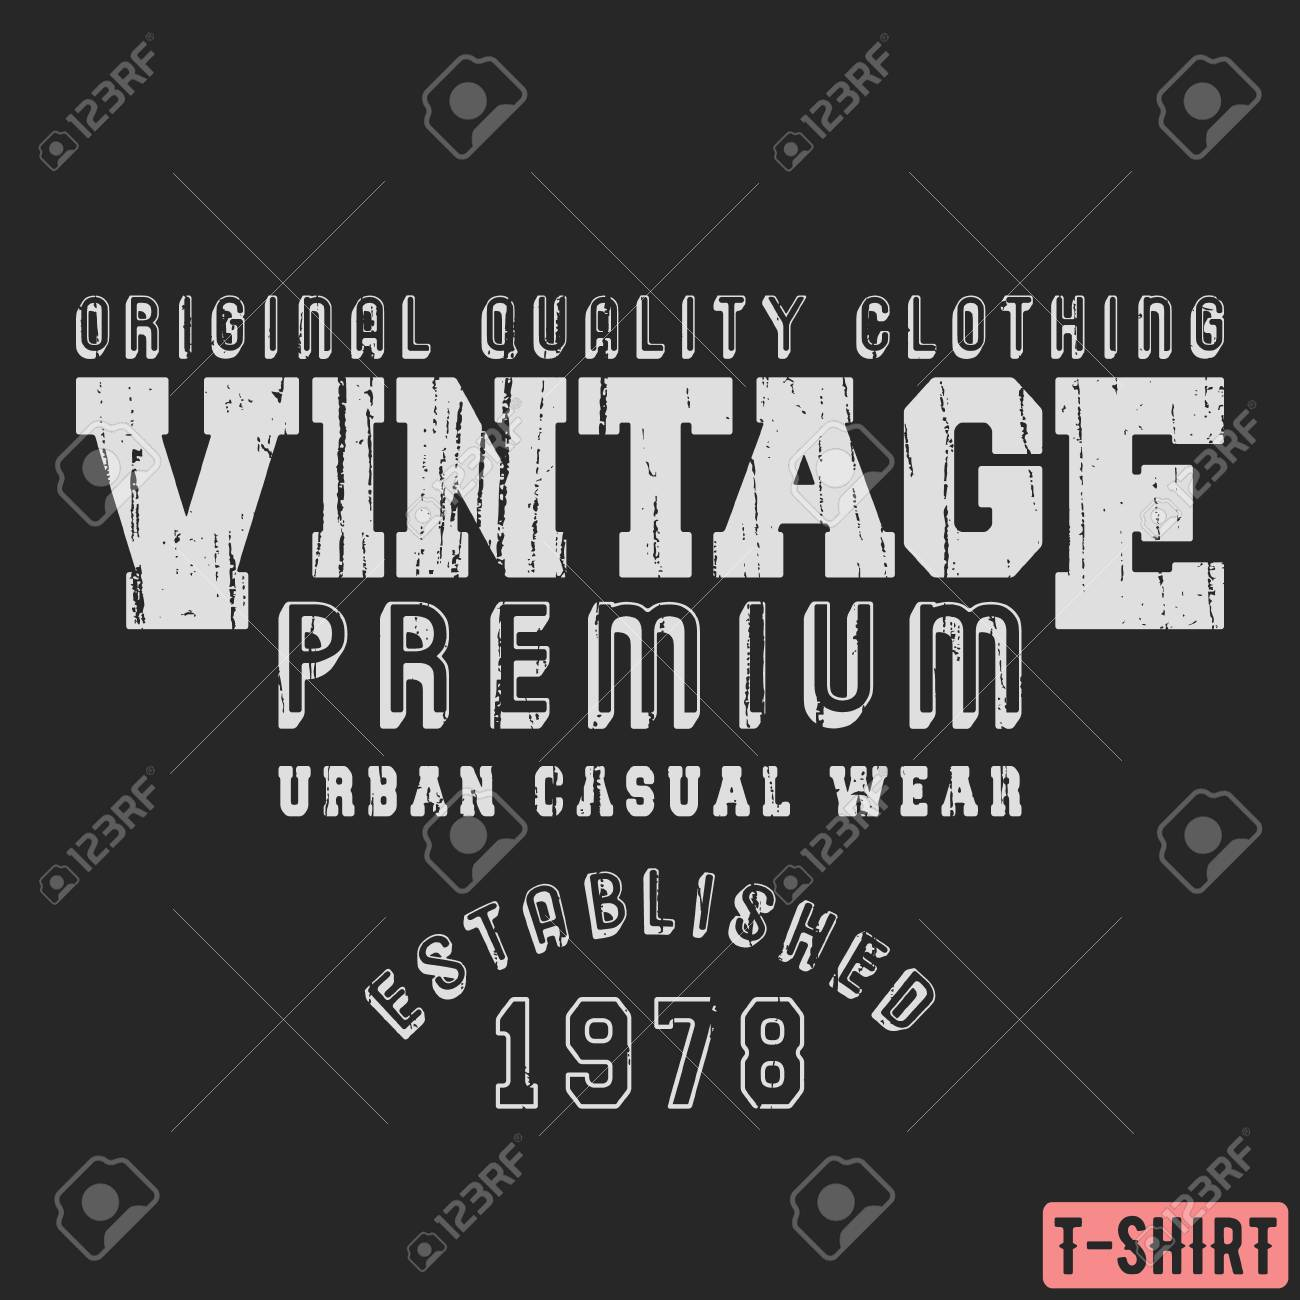 6349dc337 Vector - Vintage premium t-shirt stamp. Textured design for printing  products, badge, applique, label clothing, t-shirts stamps, jeans and  casual wear tags.